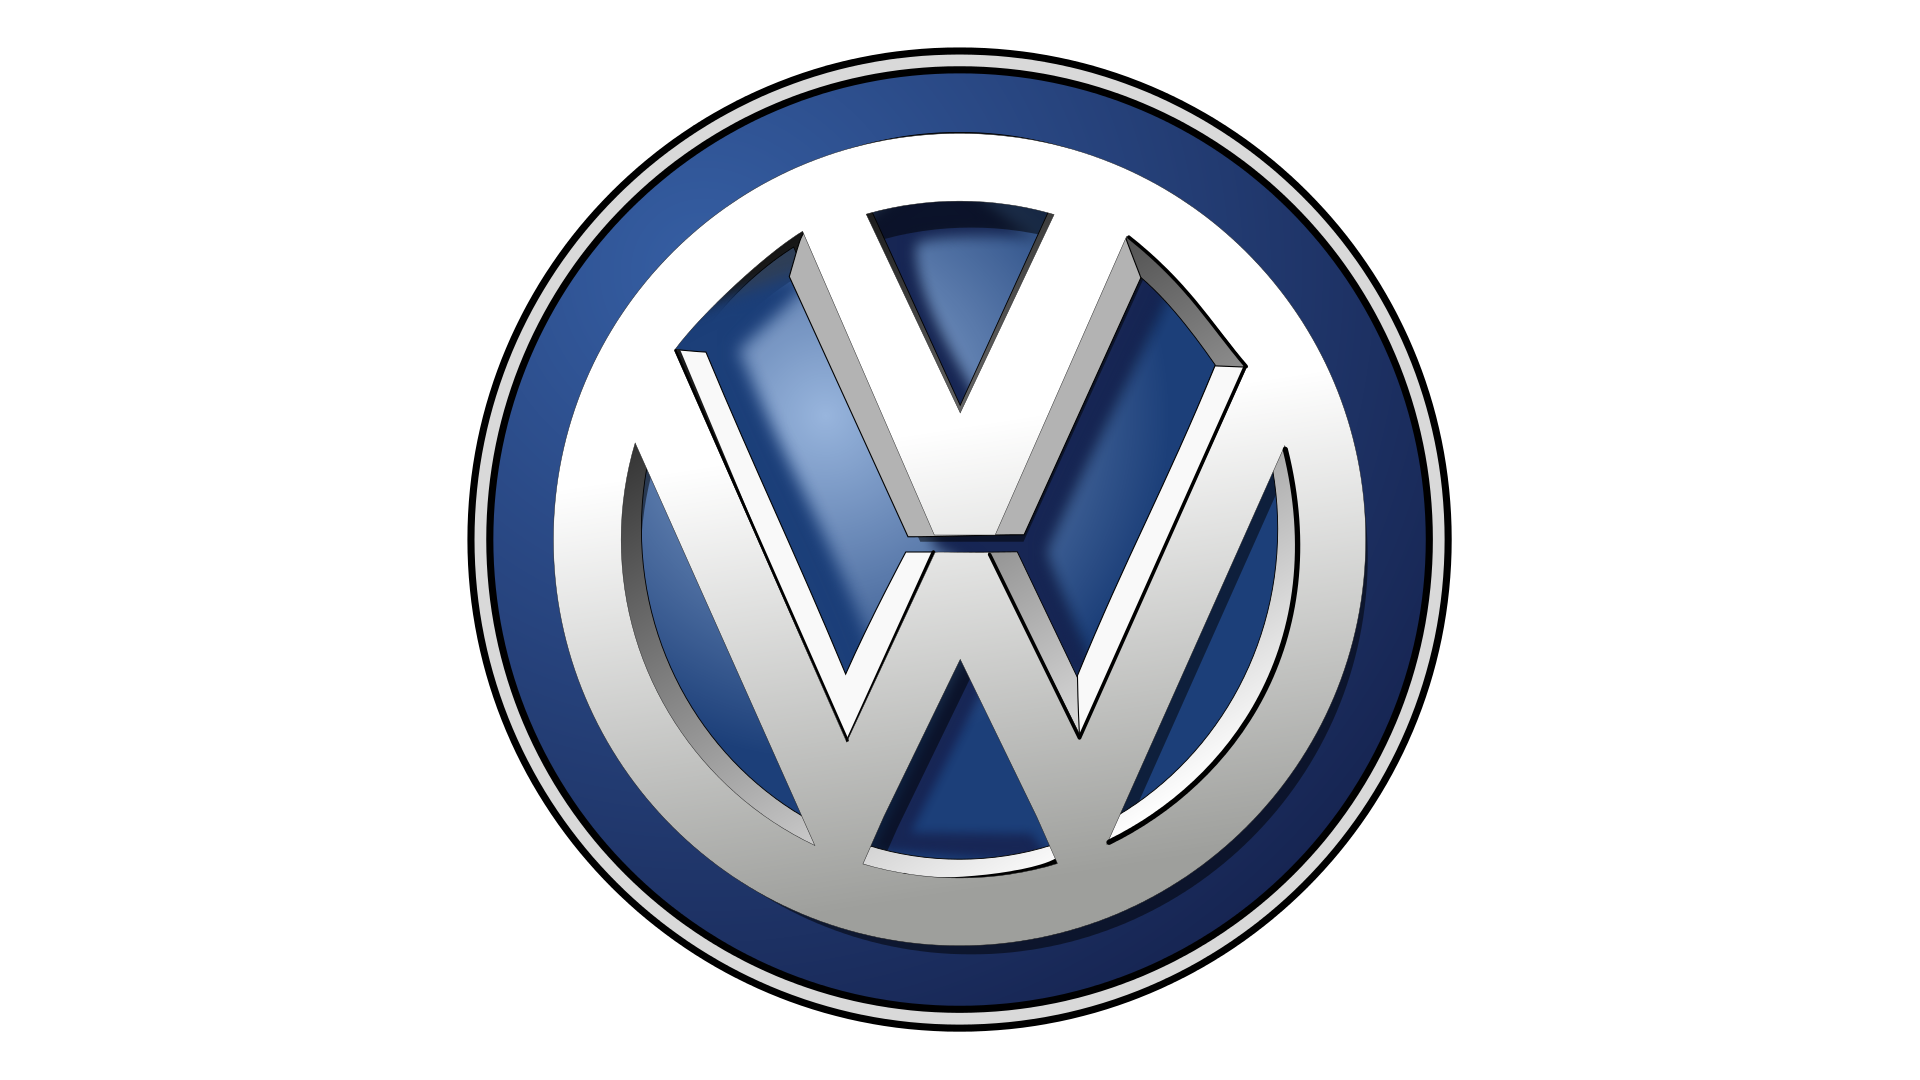 Car Logos Car Company Logos List Of Car Logos - Car signs and names